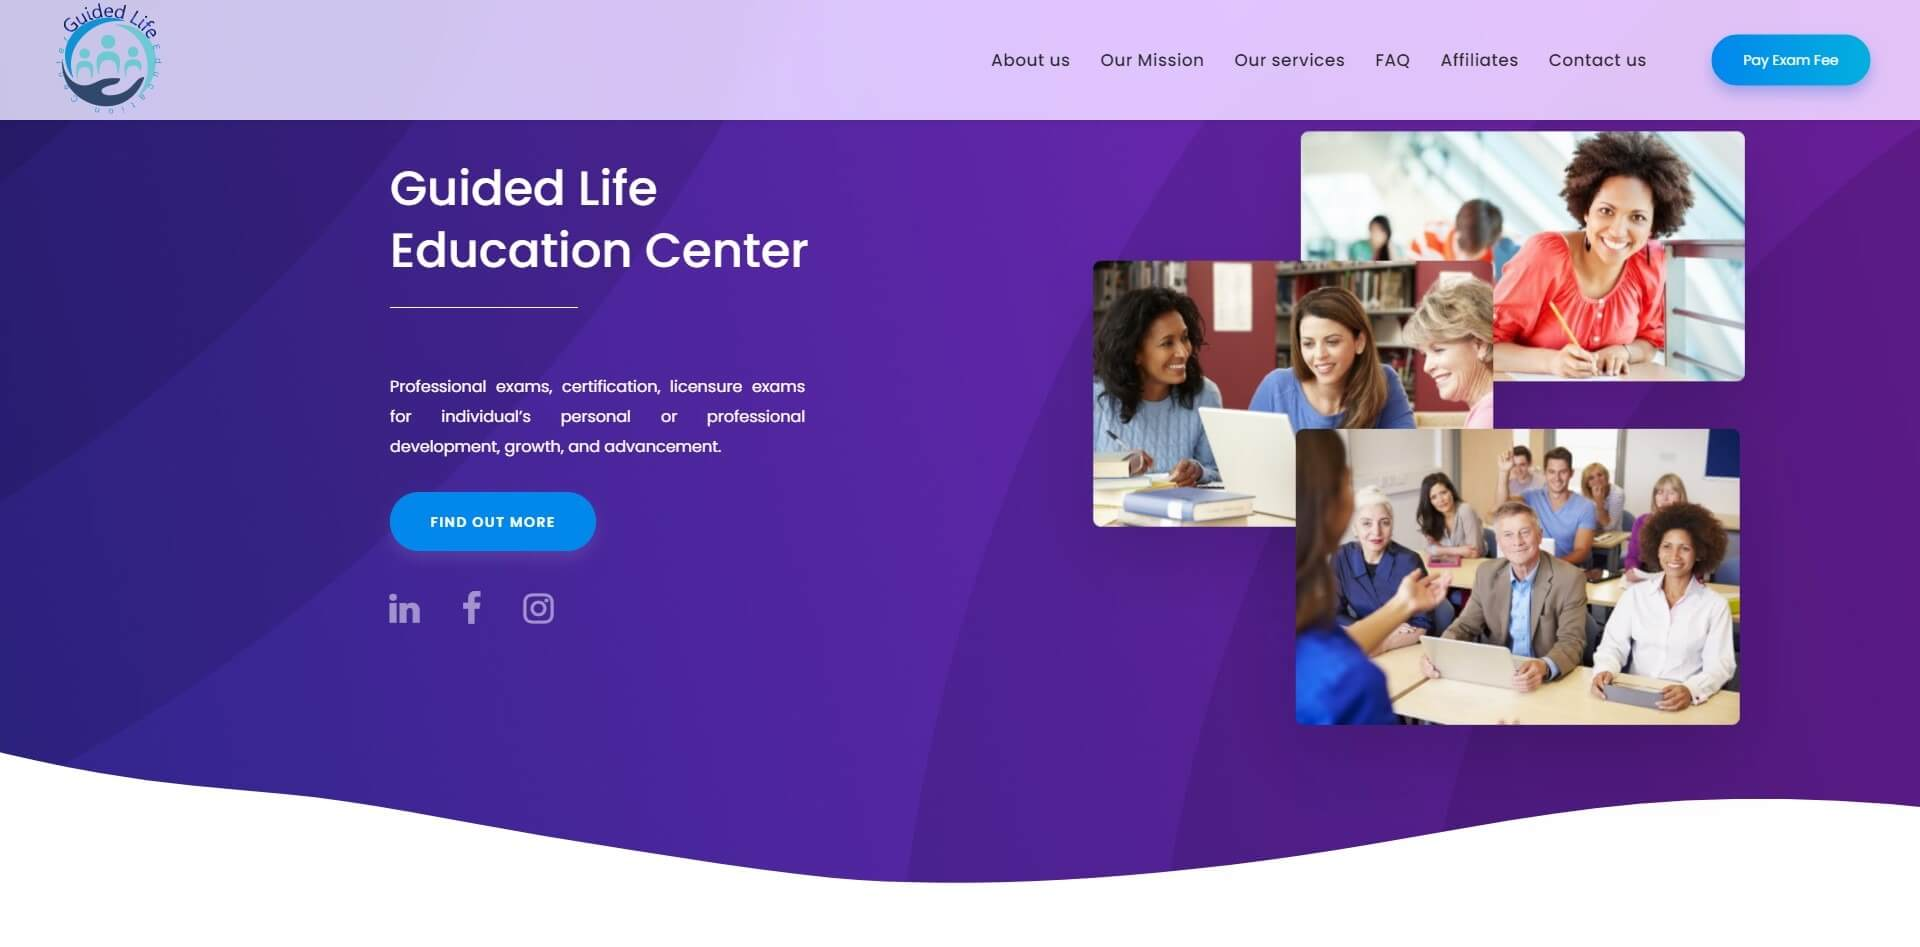 Guided Life Education Center